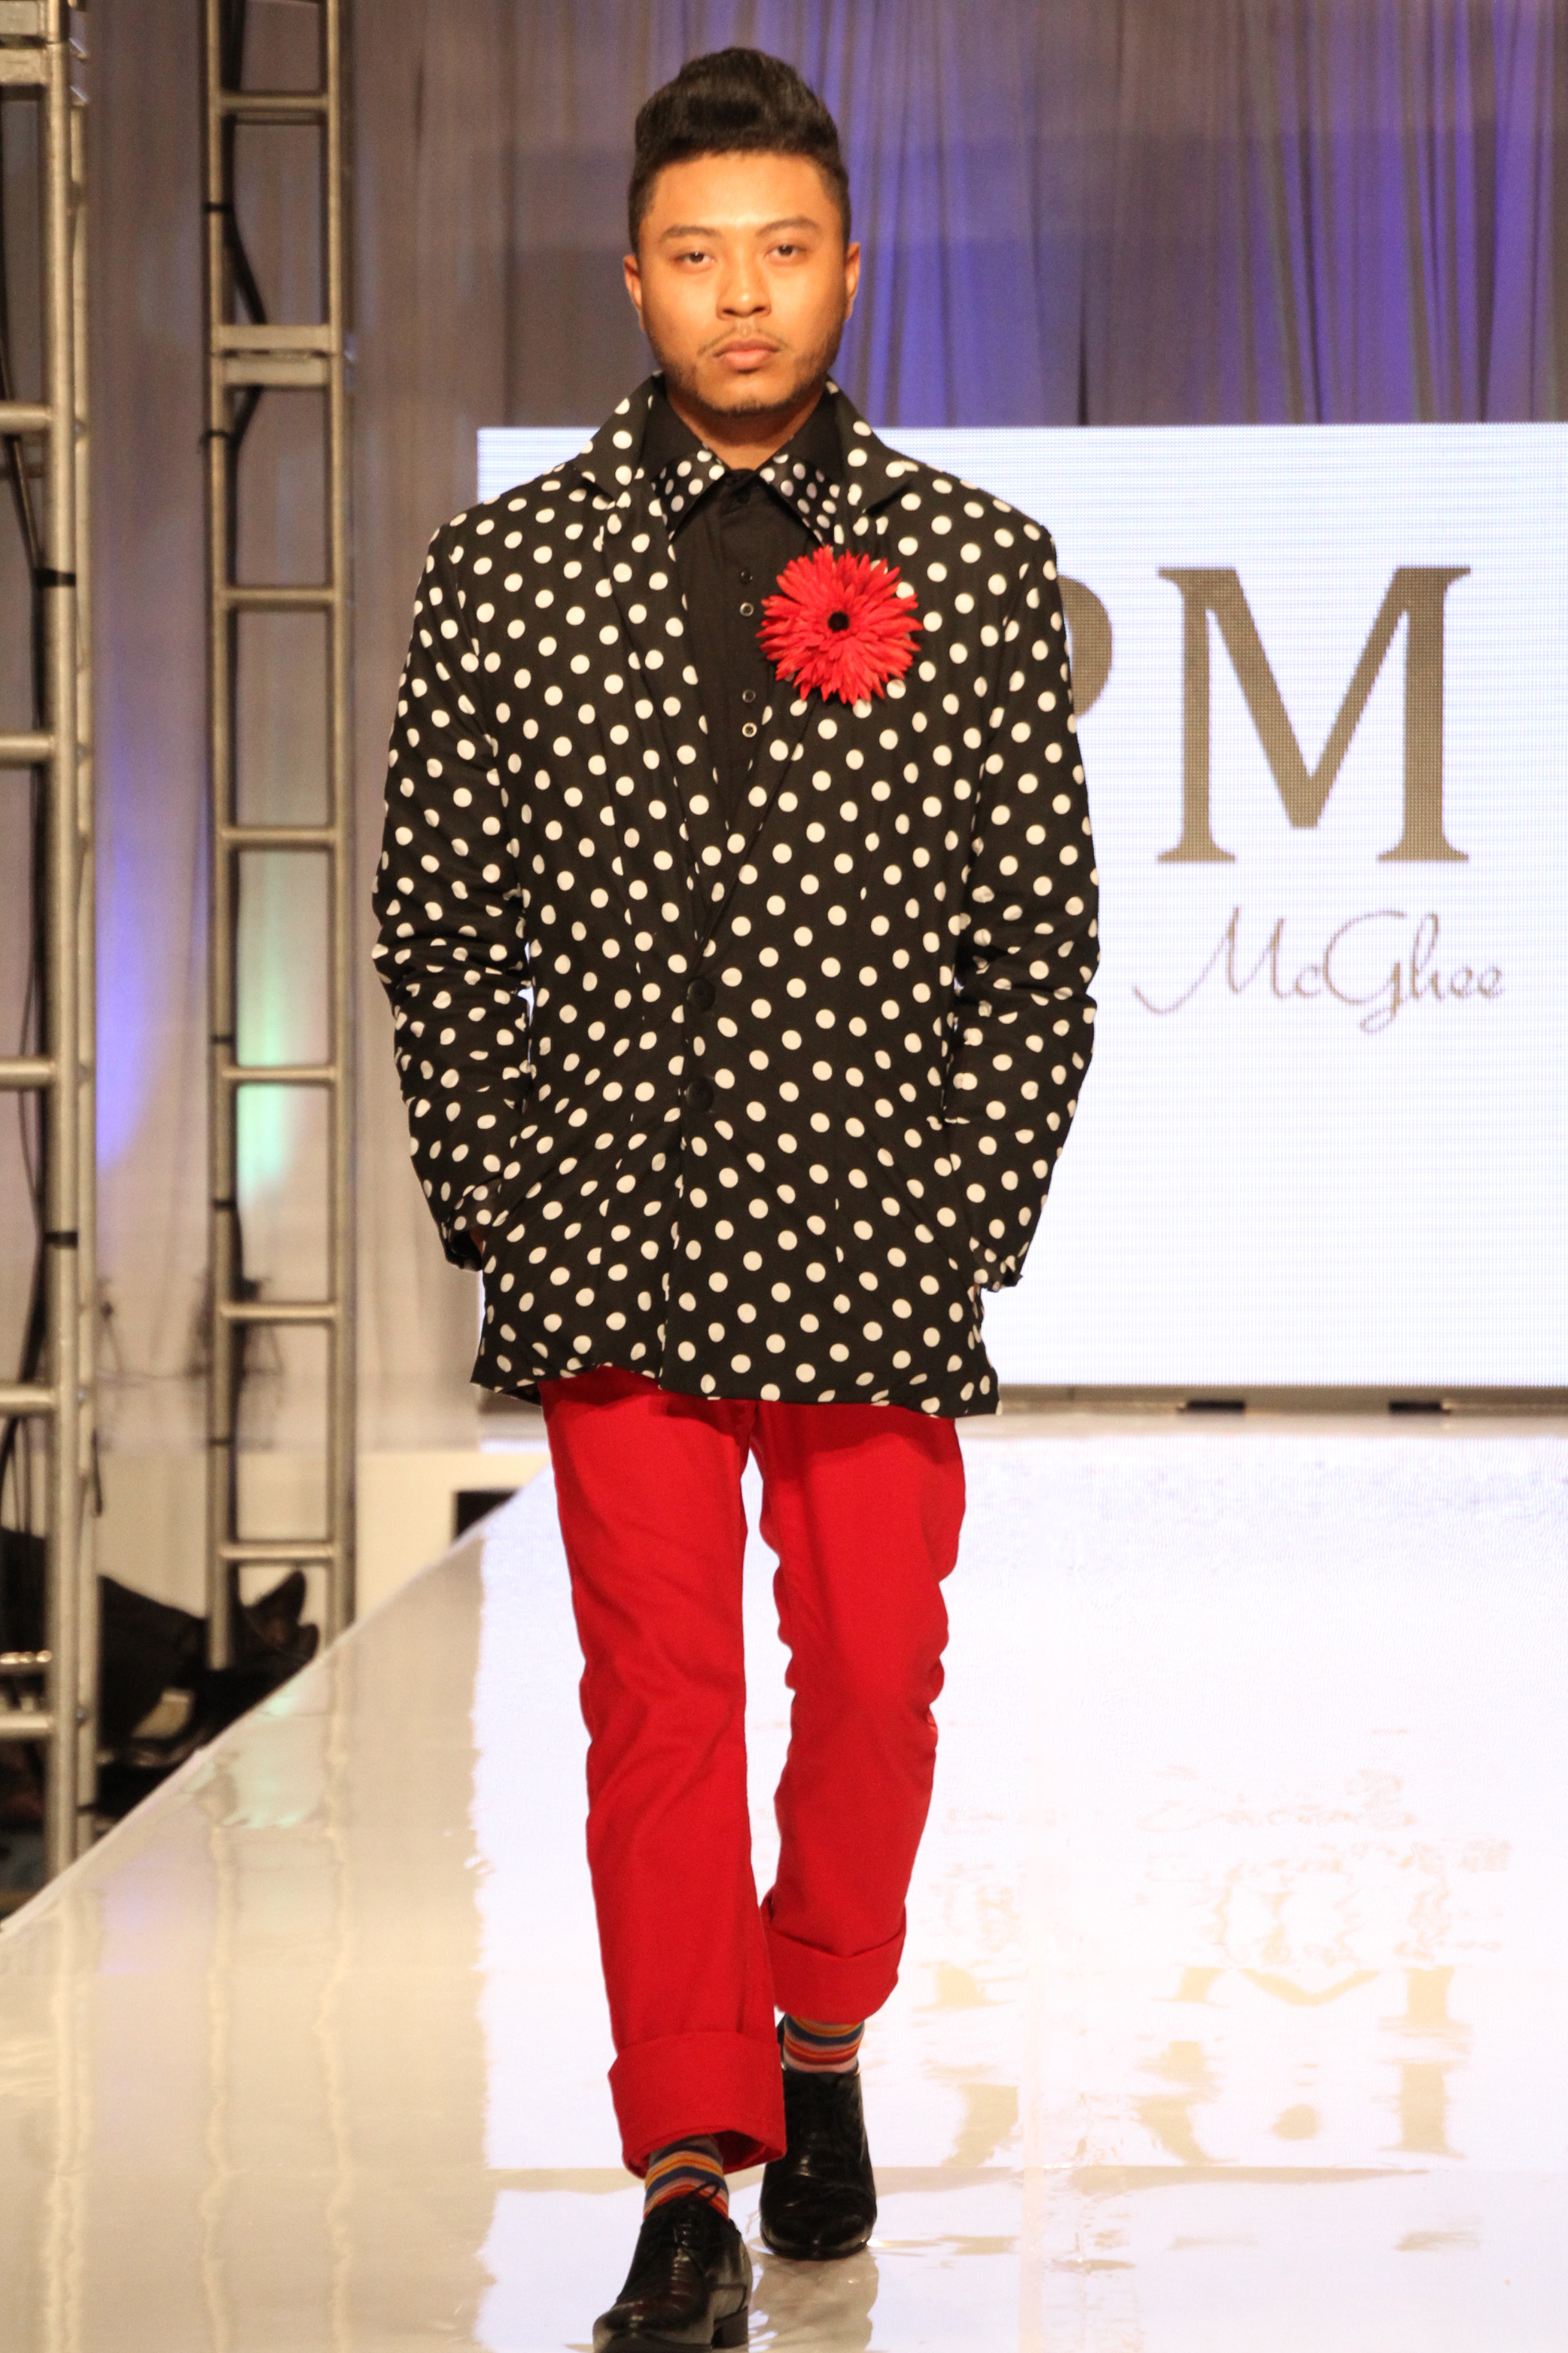 Anne-Phillips-Photography-FWTB-2014-runway-Audrey-Pat-McGhee-IMG_8509